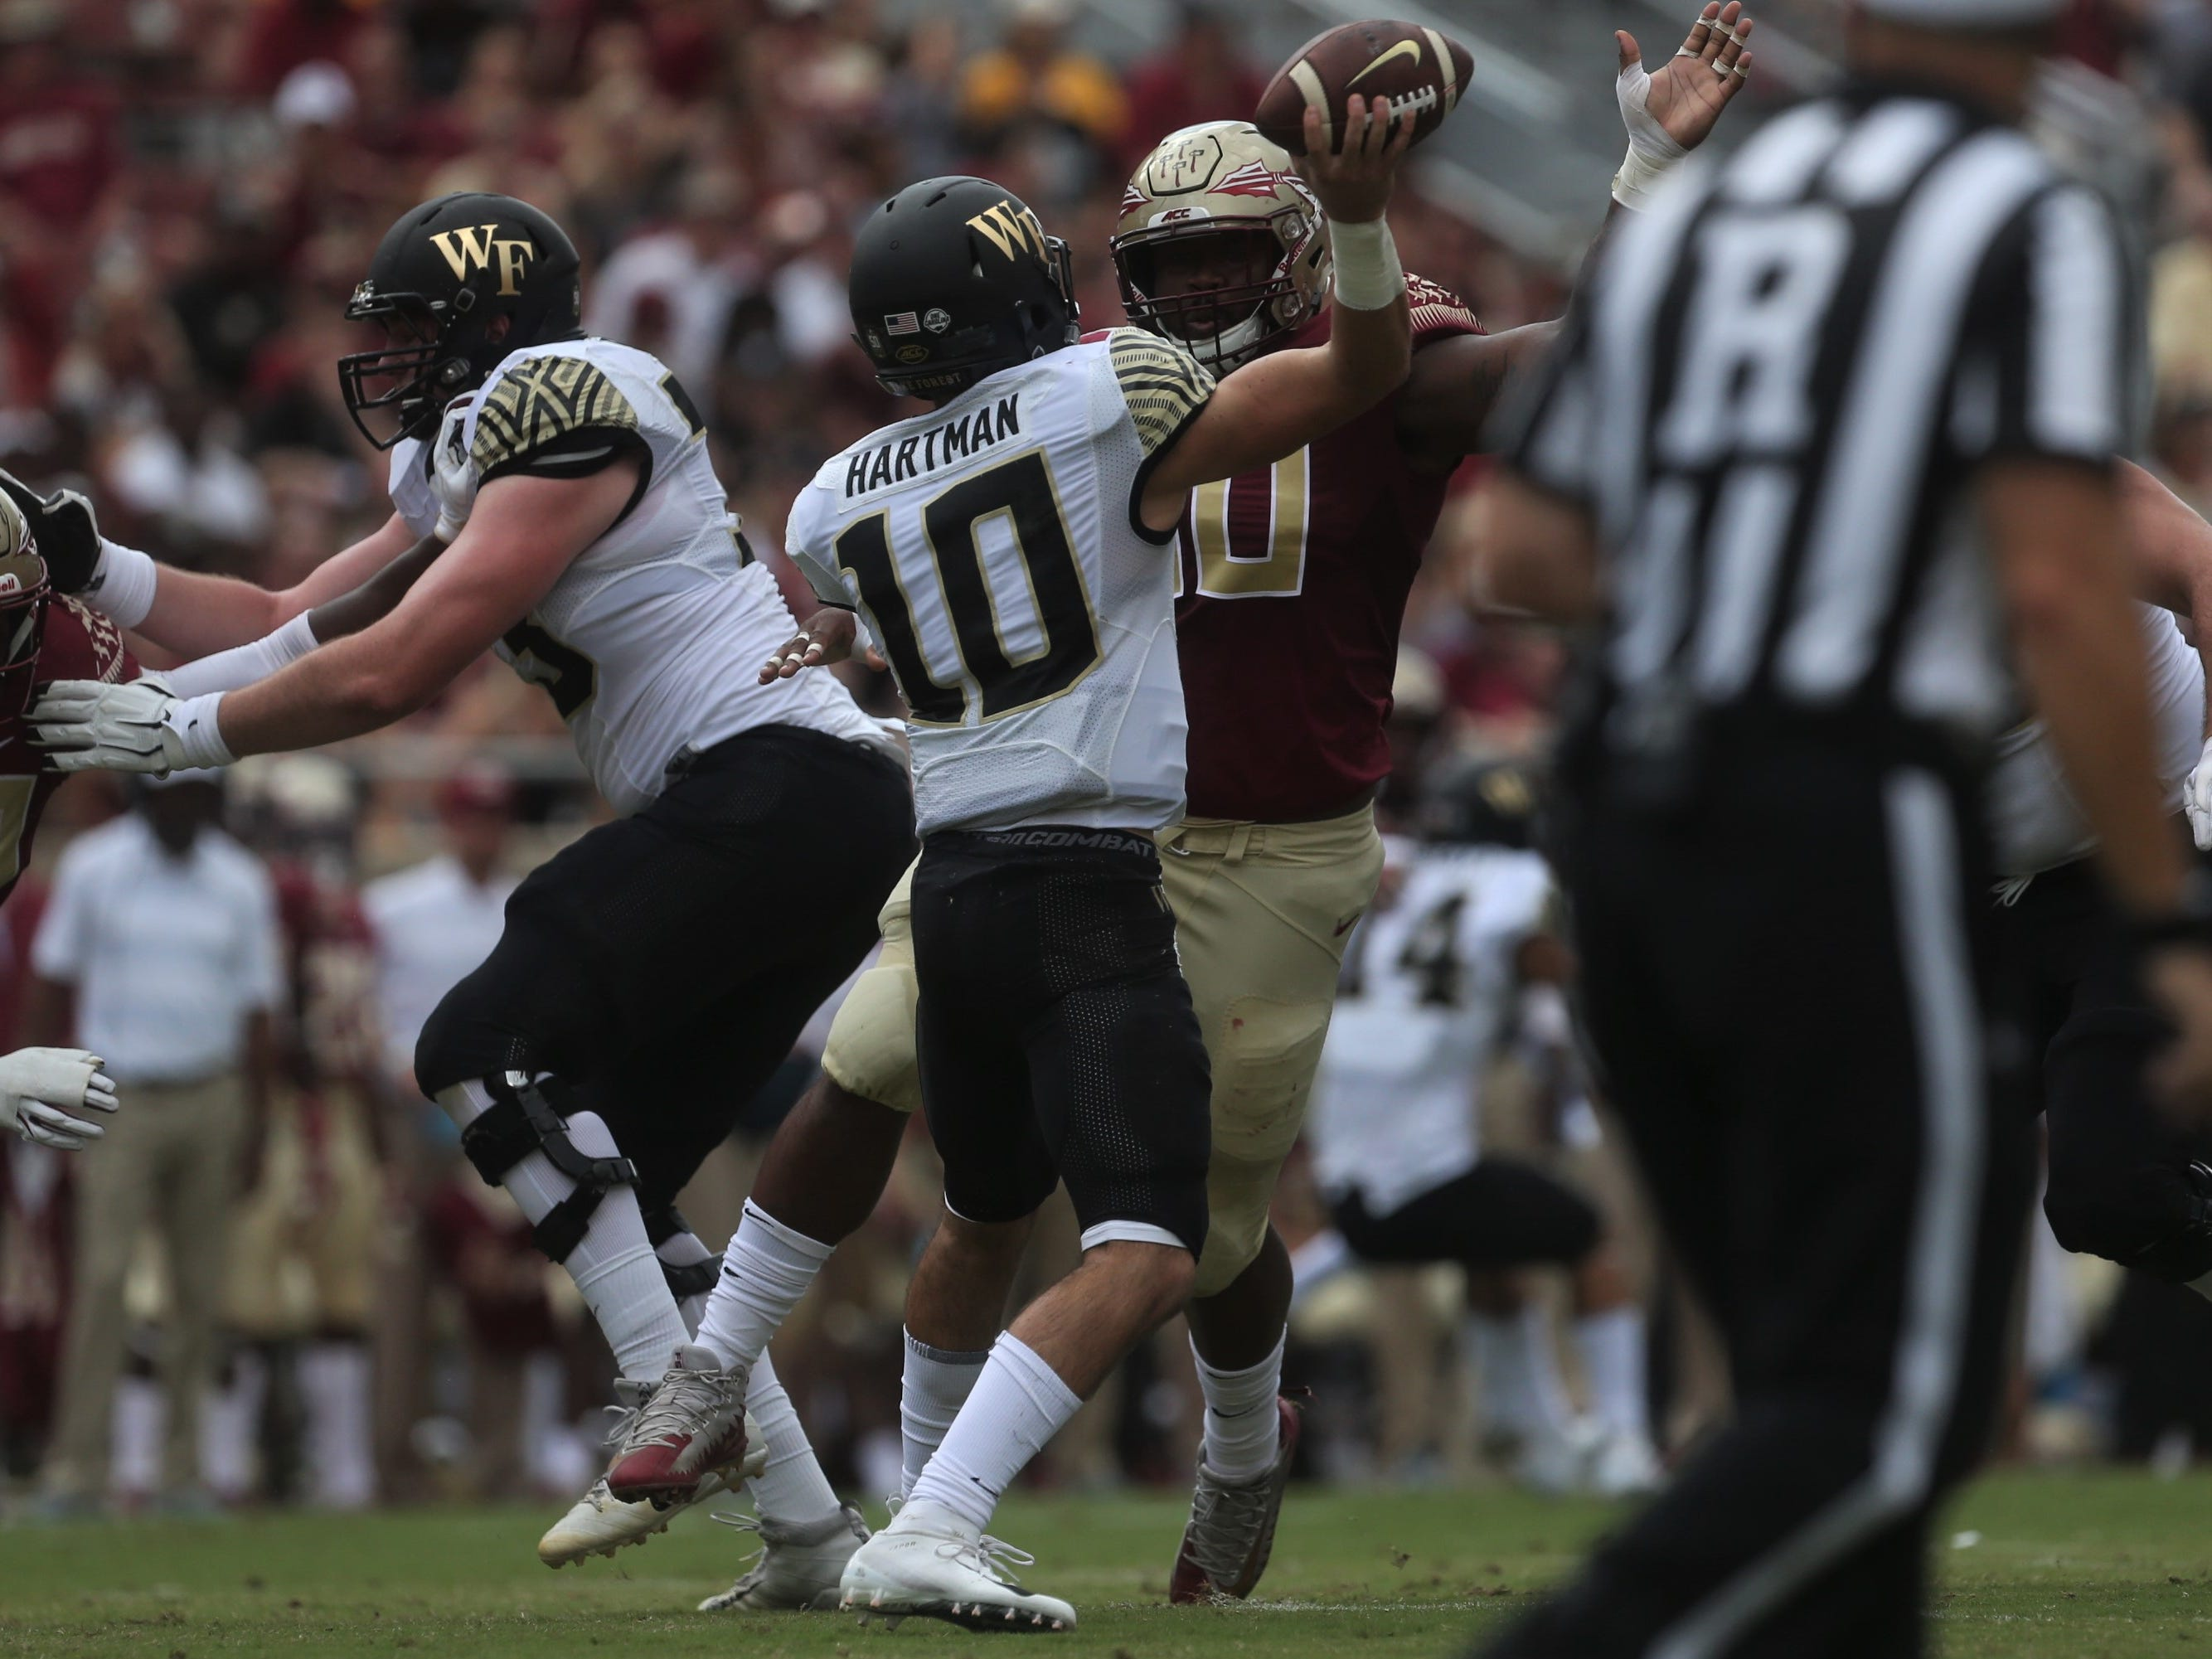 Wake Forest quarterback Sam Hartman tries to get a pass off over the rush of Florida State defensive tackle Demarcus Christmas during a game at Doak Campbell Stadium on Saturday, Oct. 20, 2018.